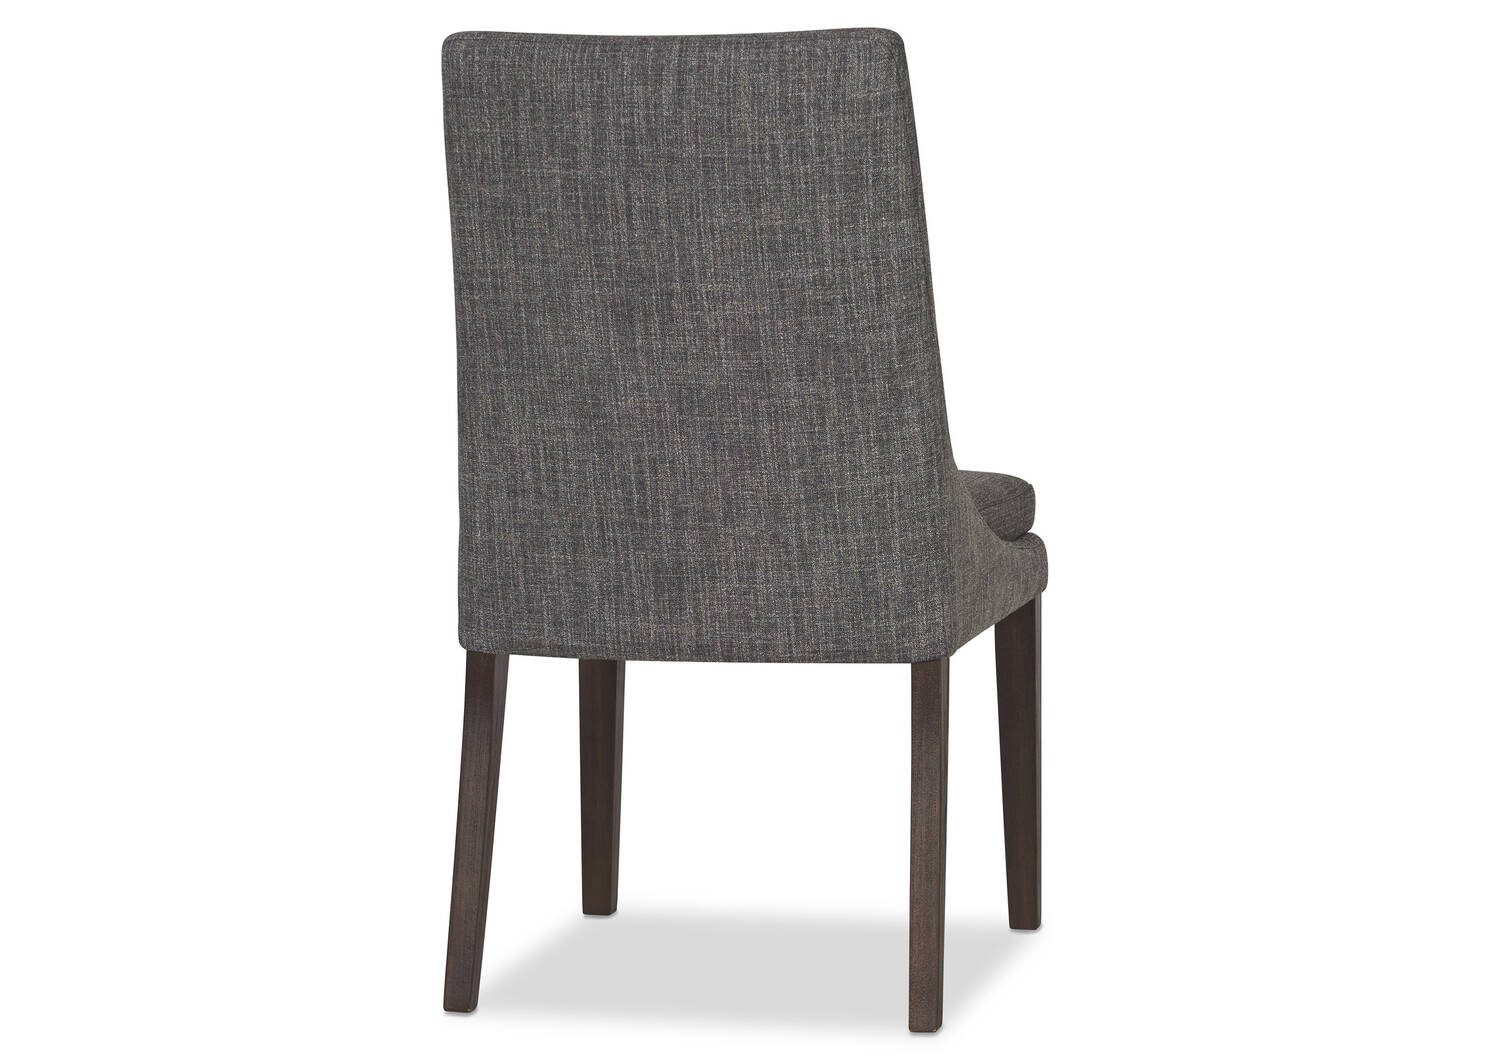 Montana Dining Chair -Lund Charcoal